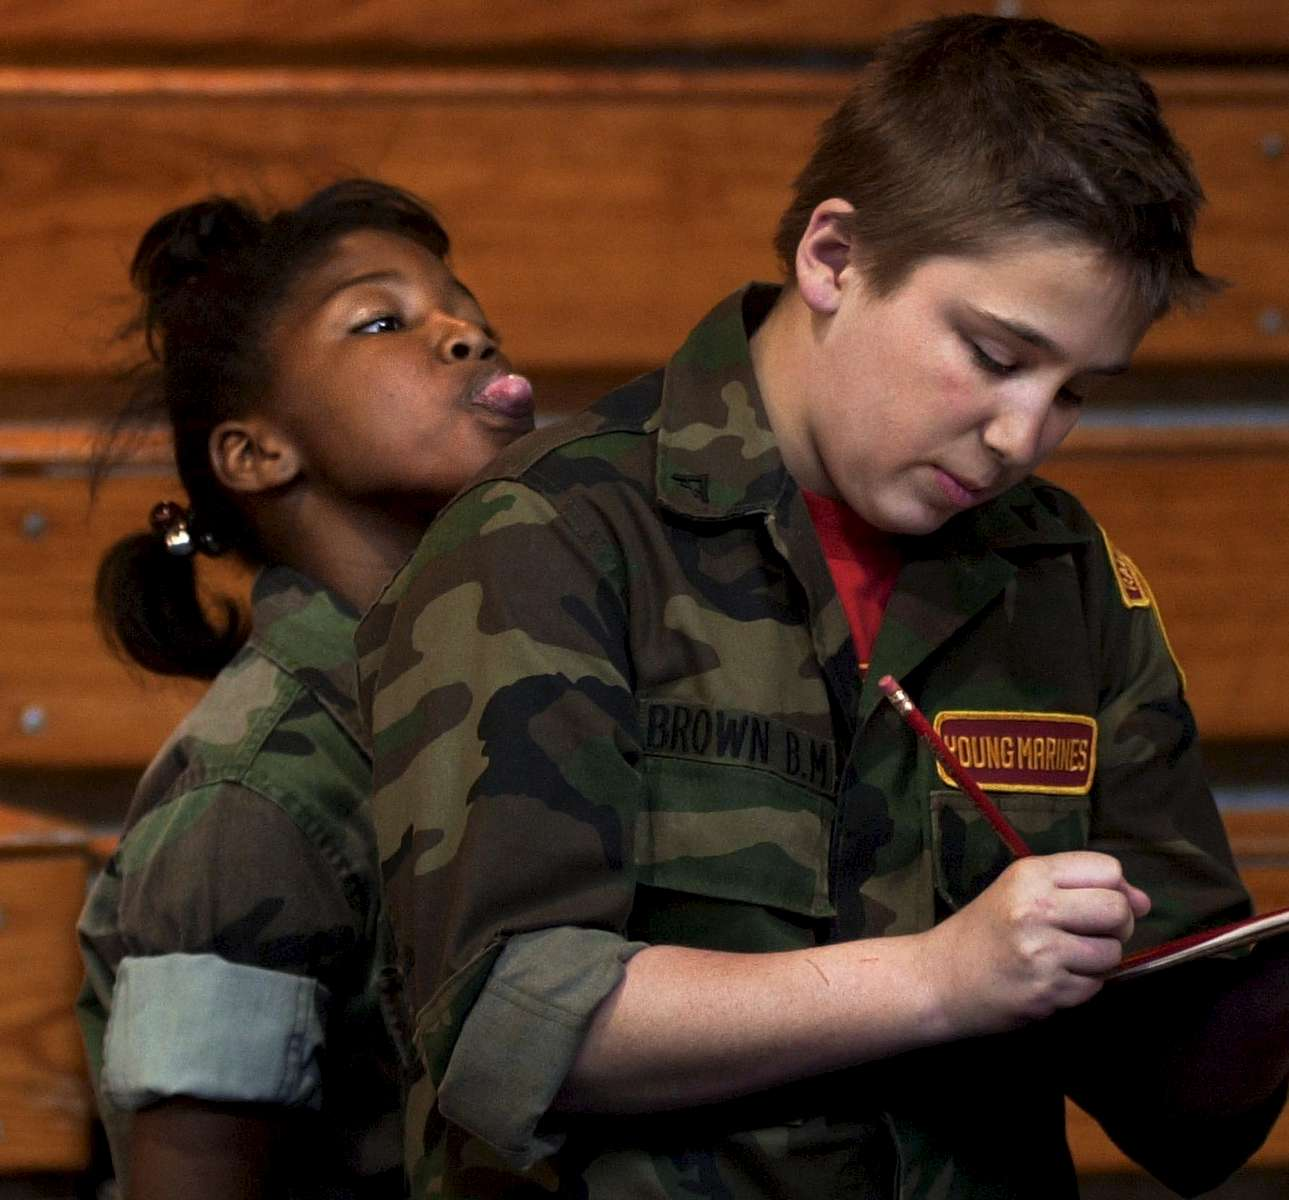 Brielle Rocco shows her displeasure with officer Brandon Brown in the Young Marines program. The program is held to help youth gain better discipline and respect towards others.